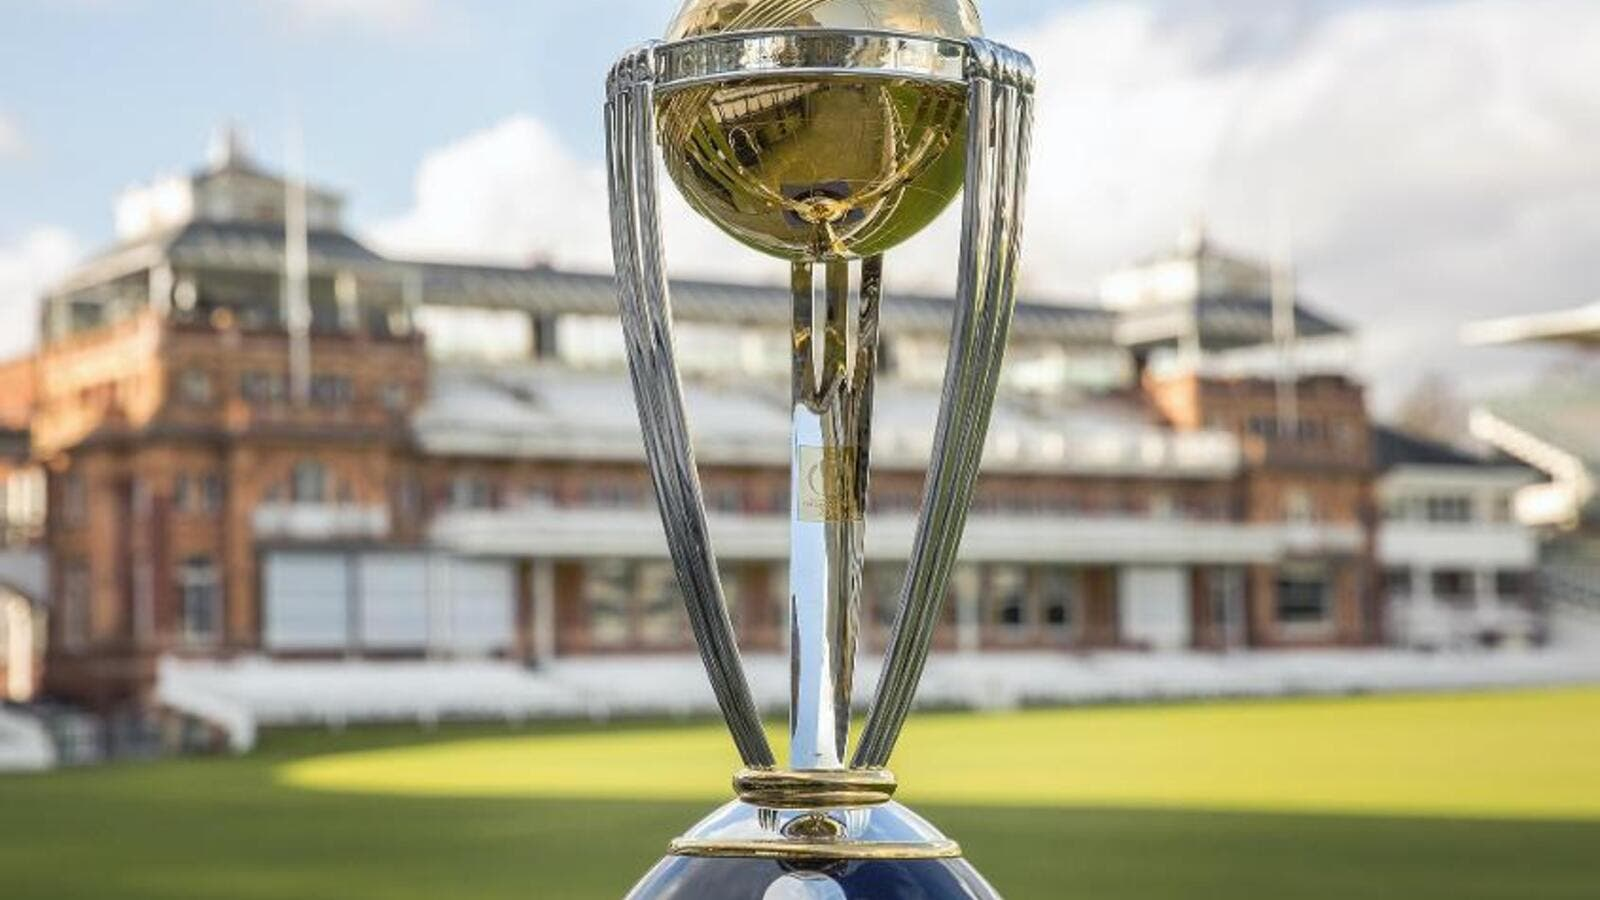 The ICC Cricket World Cup trophy